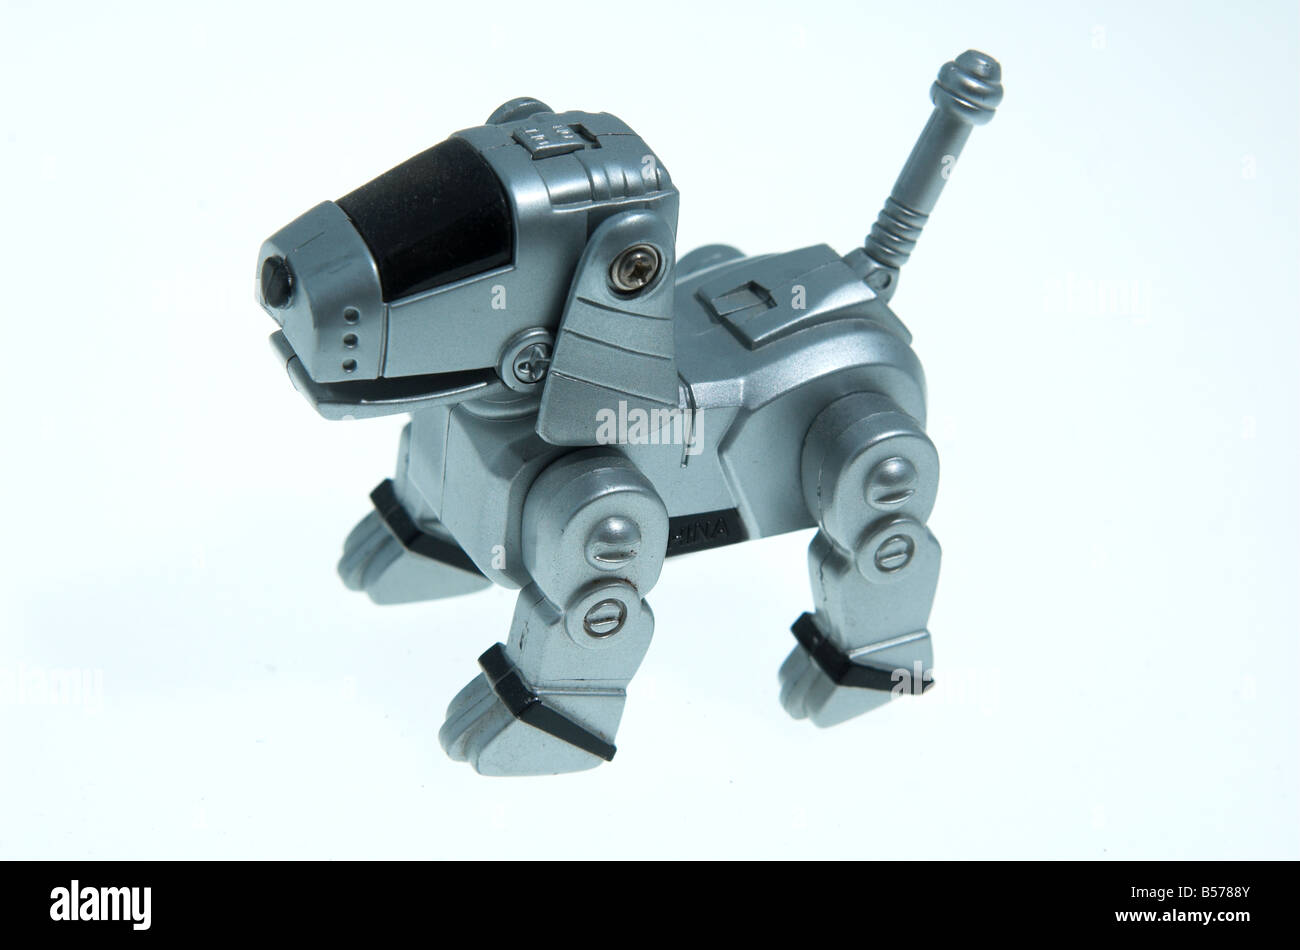 Robotic Dog Toy Stock Photos Robotic Dog Toy Stock Images Alamy